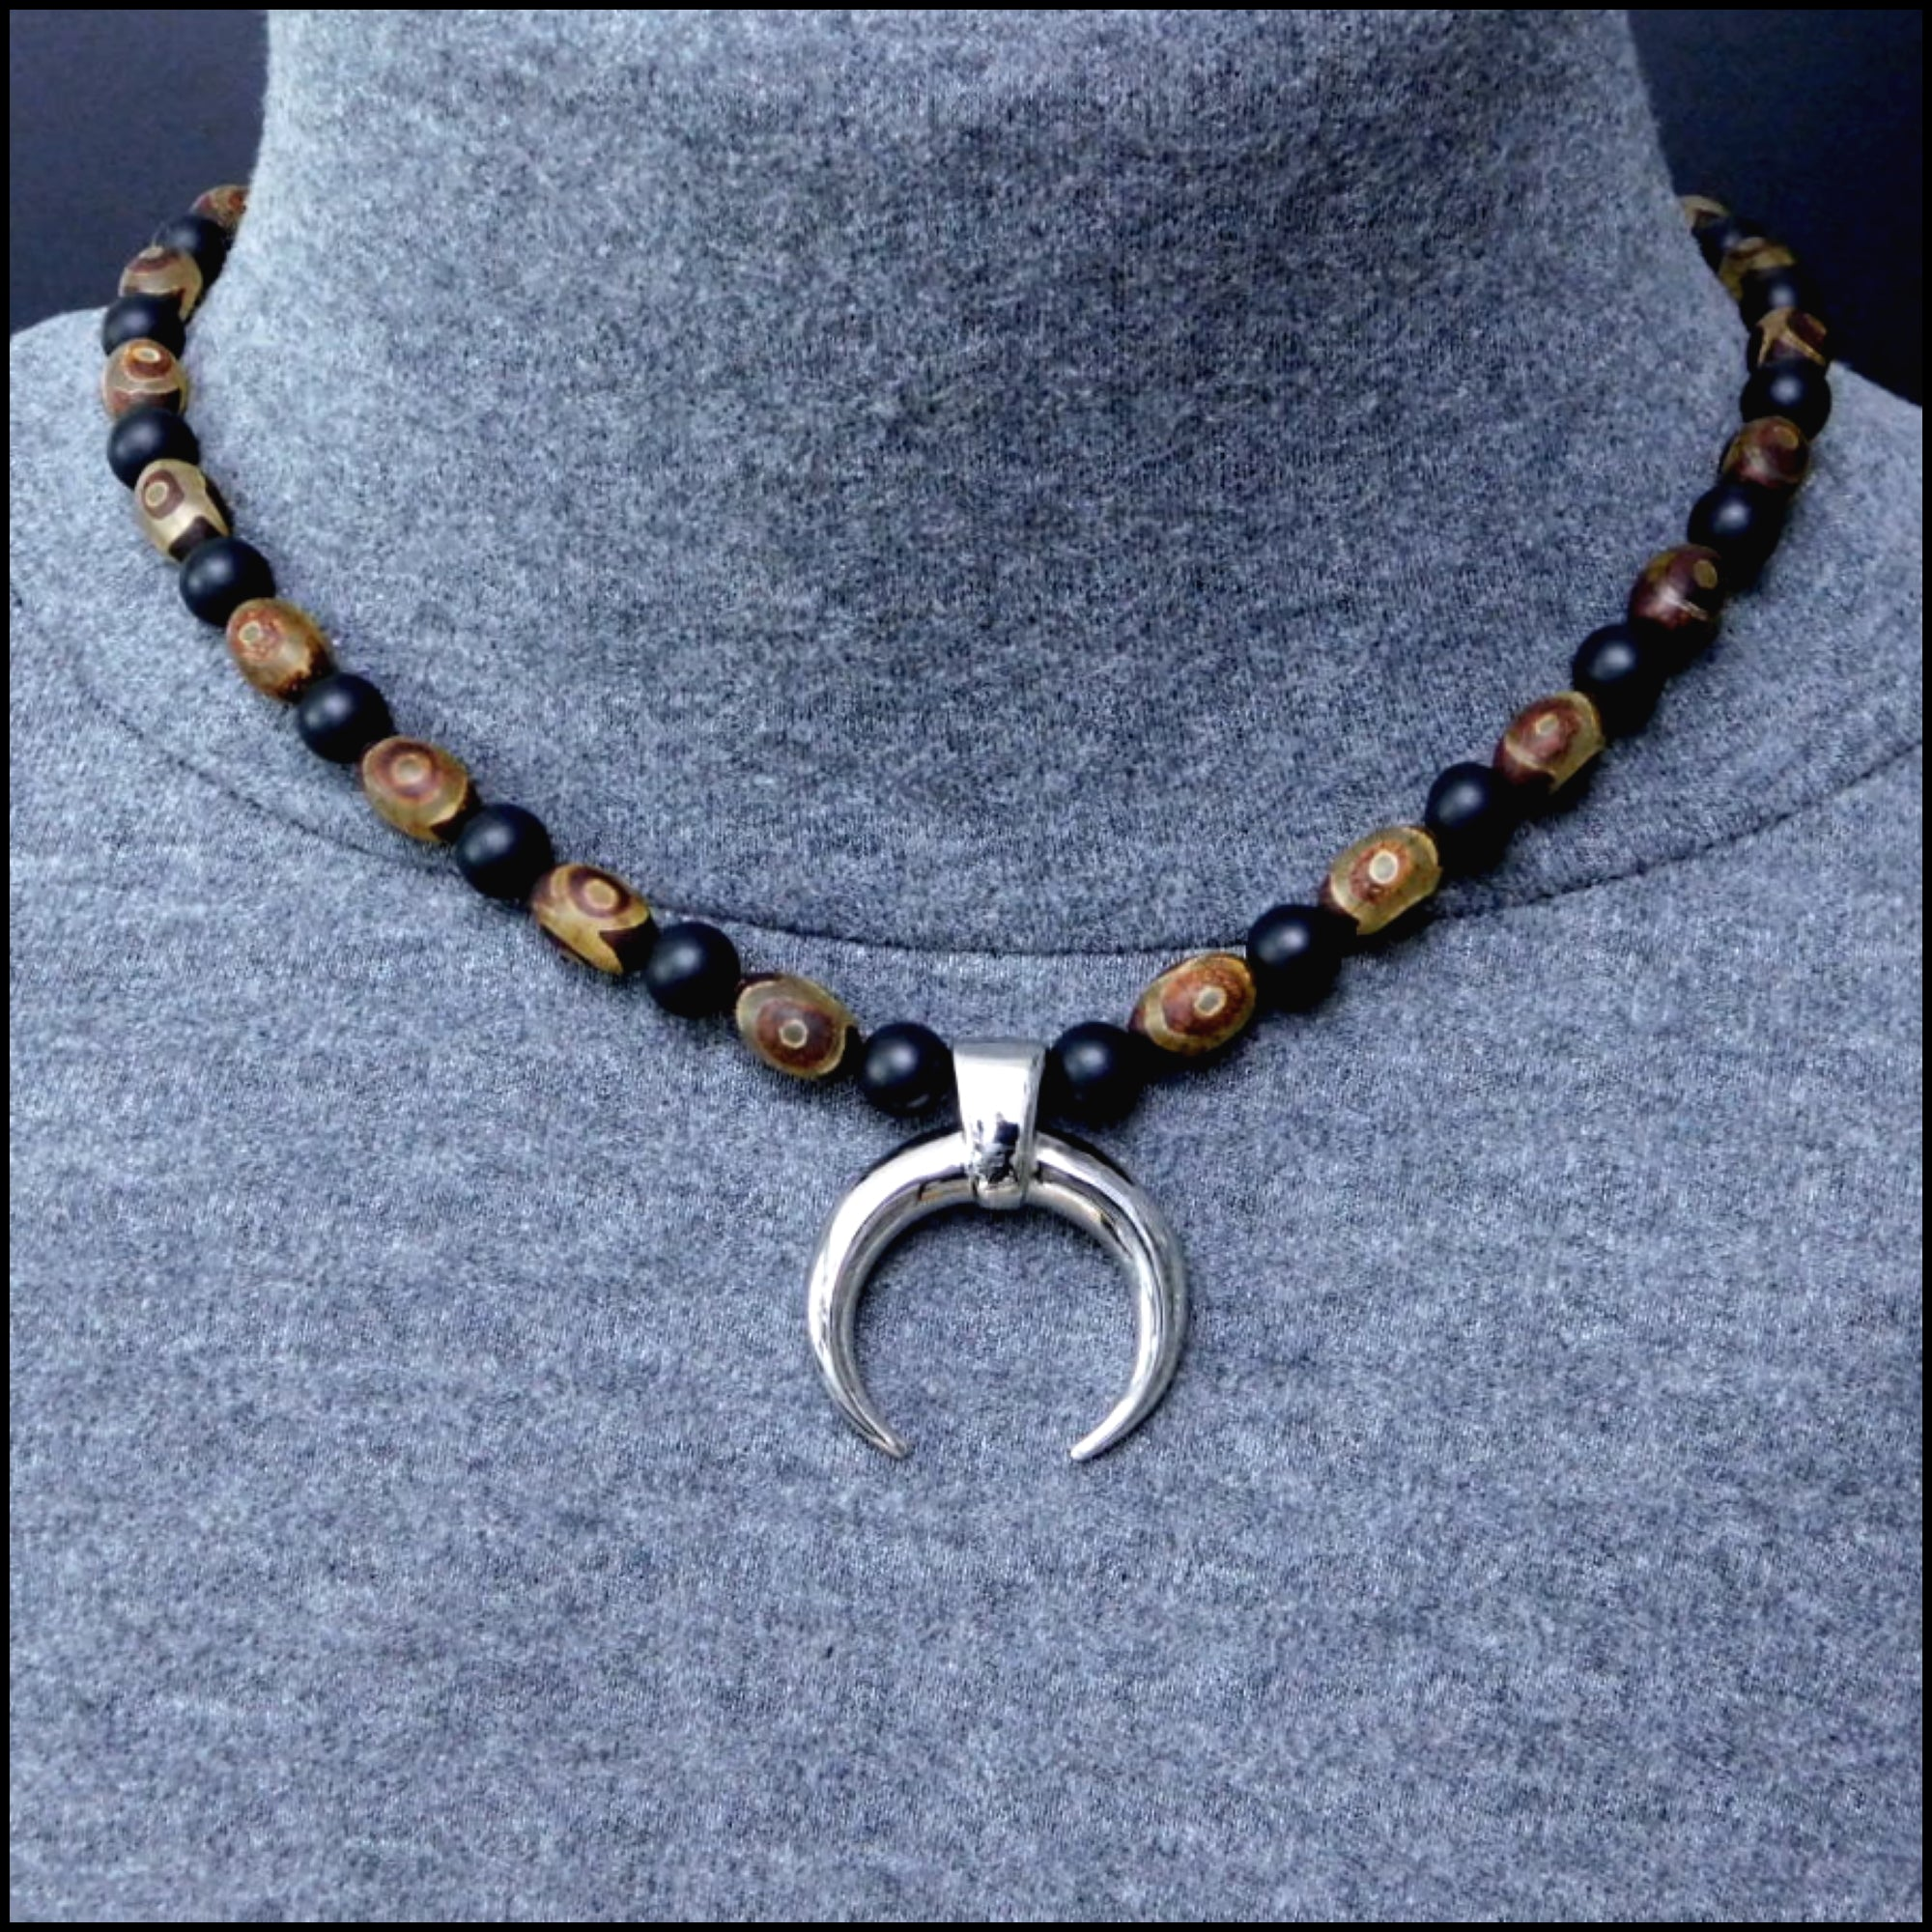 Warlock Warrior Necklace with Antique Brown Triple Eye Agate and Matte Black Onyx Beads